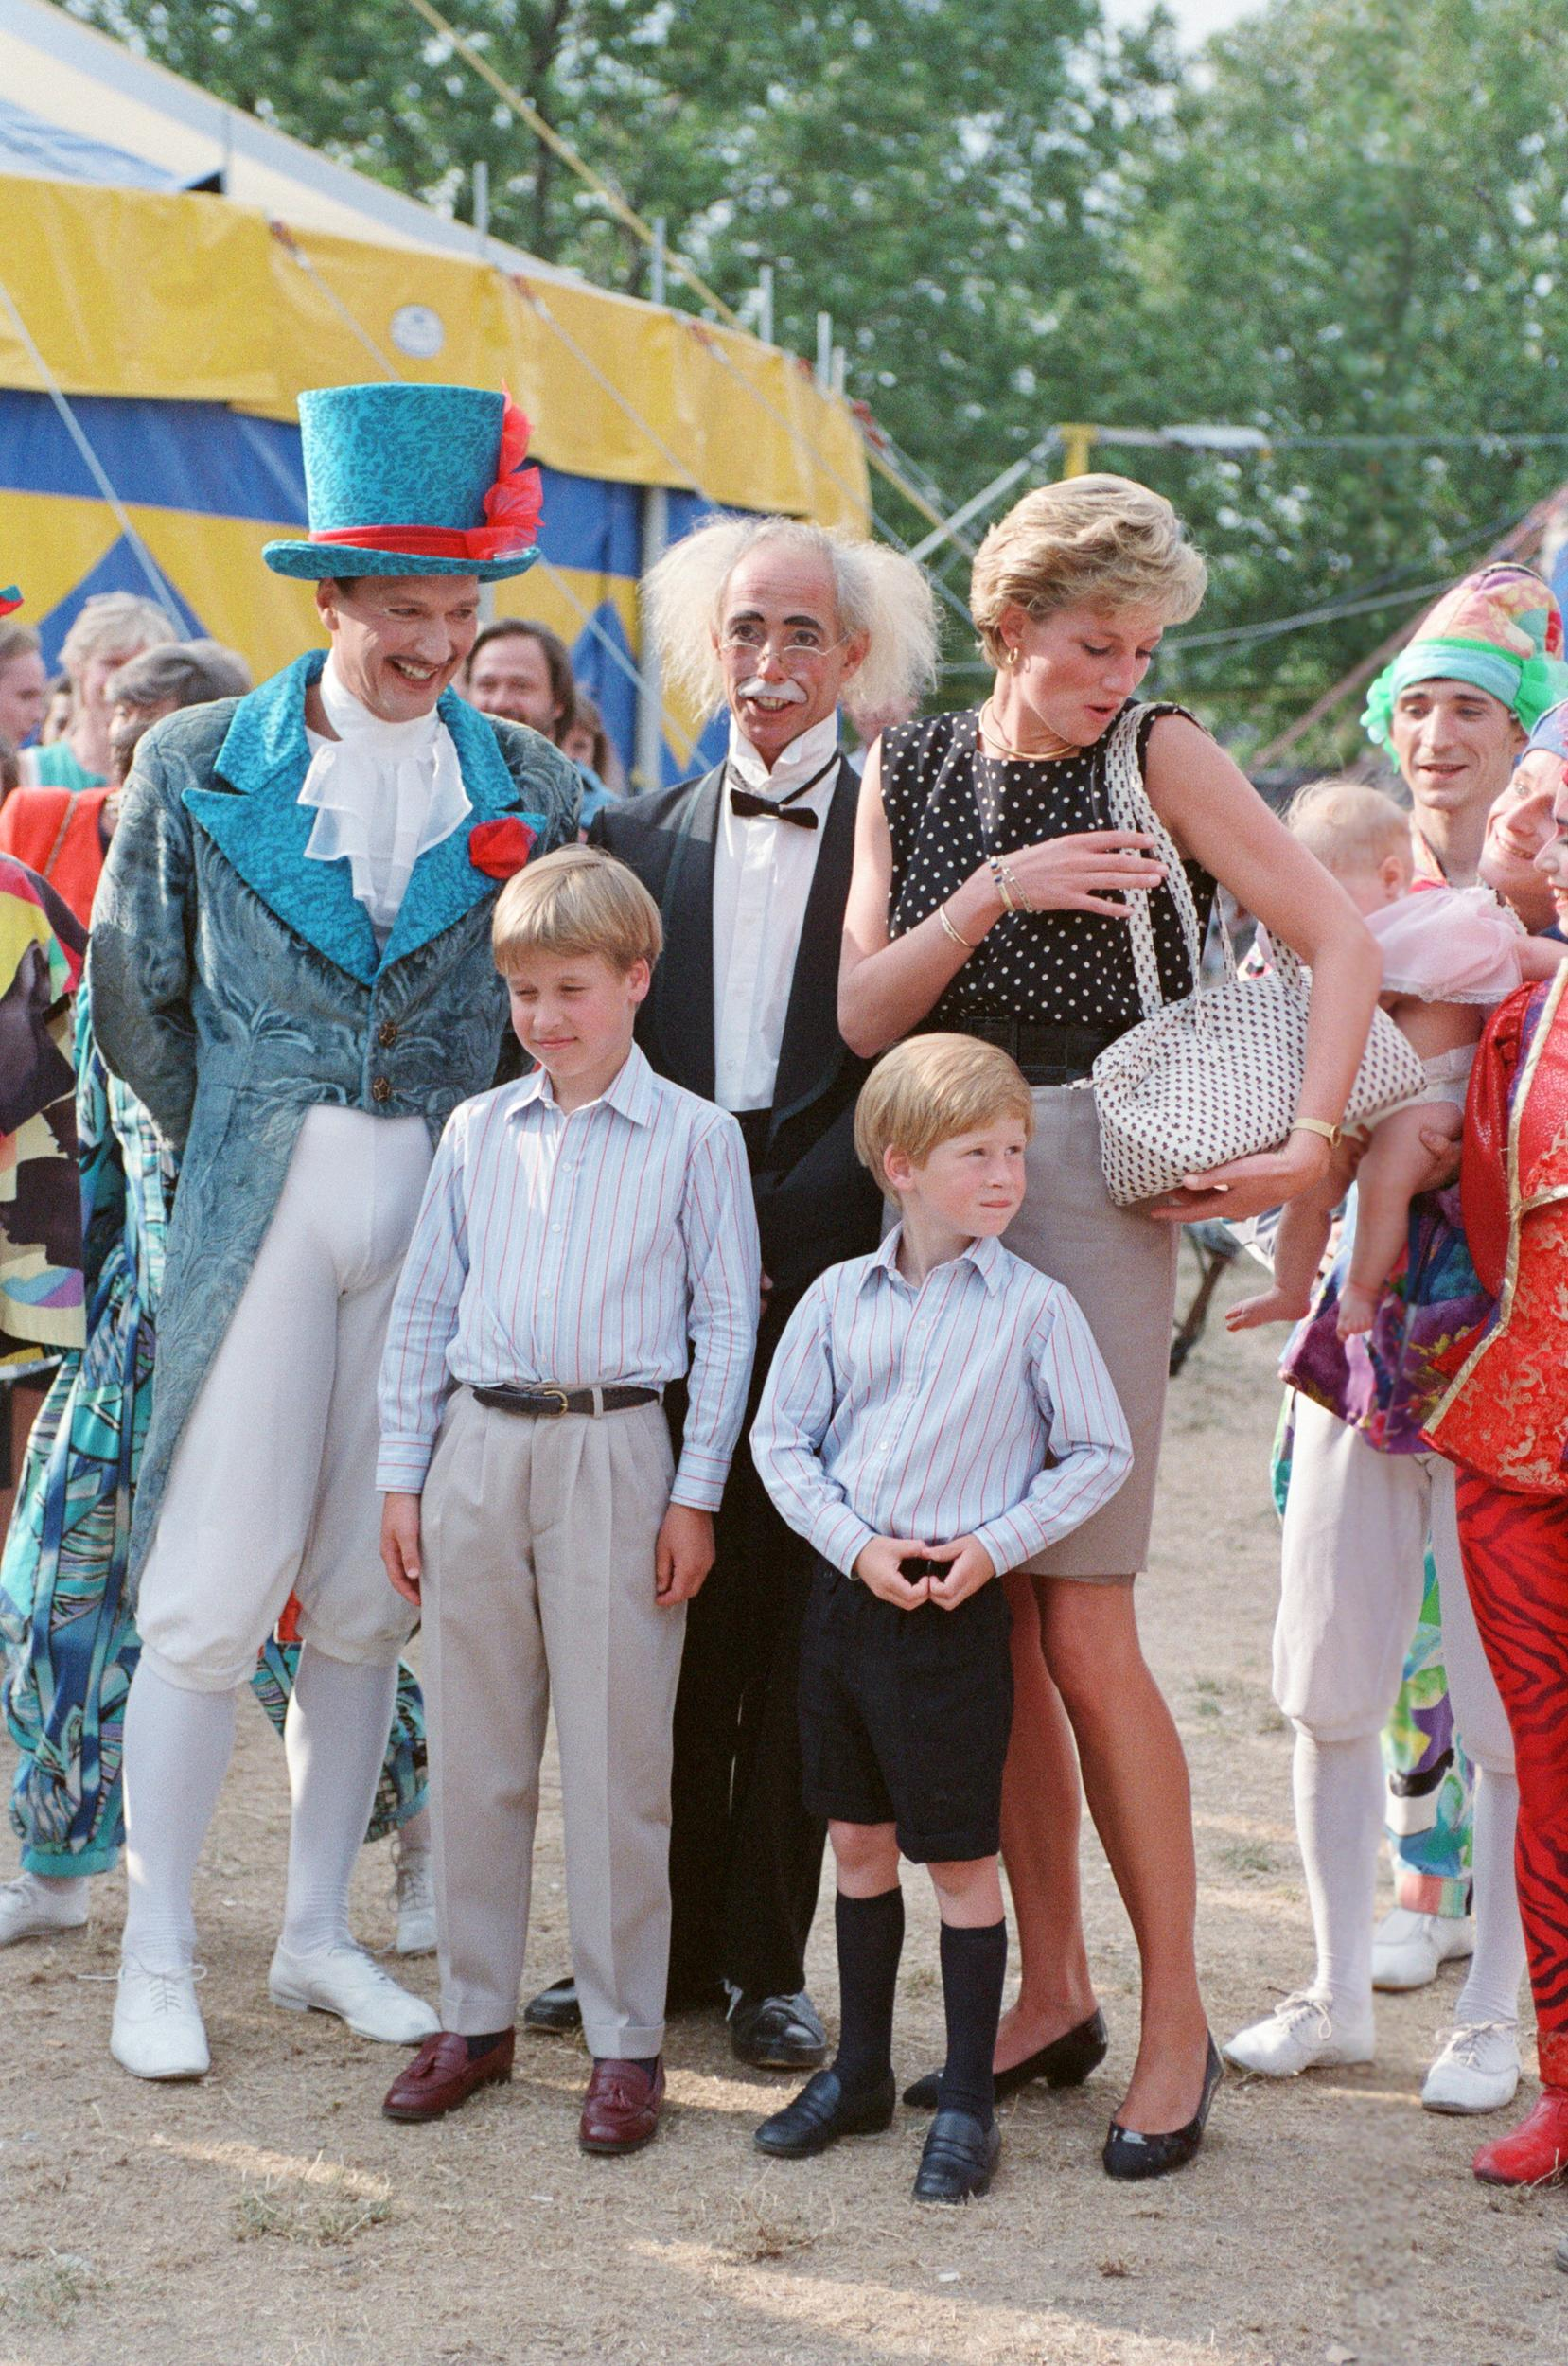 The Princess of Wales, Princess Diana, along with her songs William and Harry enjoy the day at Le Cirque du Soleil, the Children's Circus. Picture taken 8th August 1990. (Photo by Ken Lennox/Mirrorpix/Getty Images)